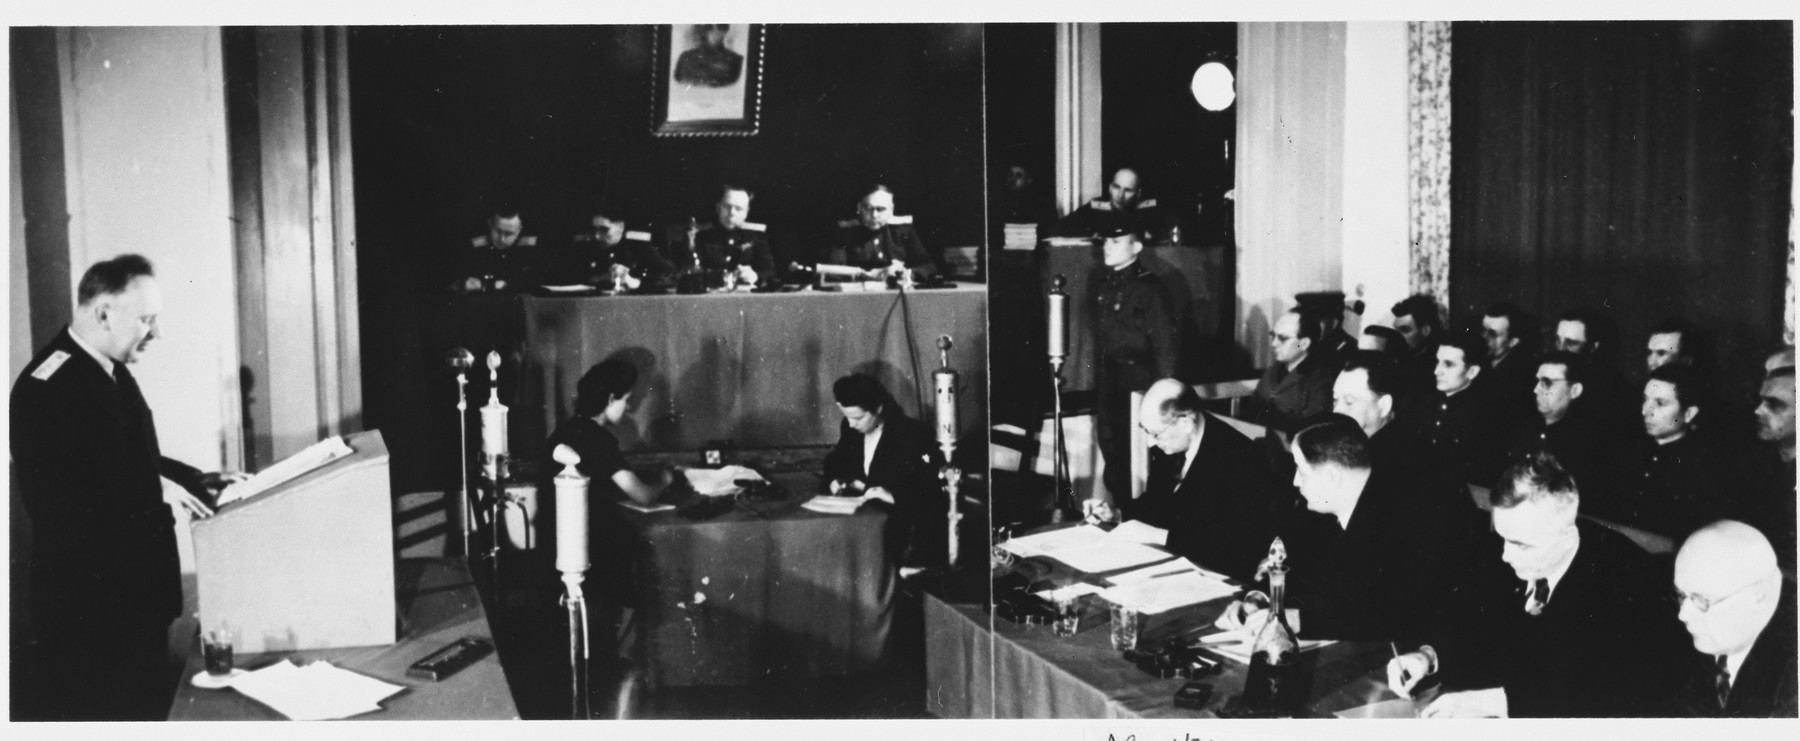 A member of the prosecution team (left) reads a statement at the Sachsenhausen concentration camp war crimes trial in Berlin.